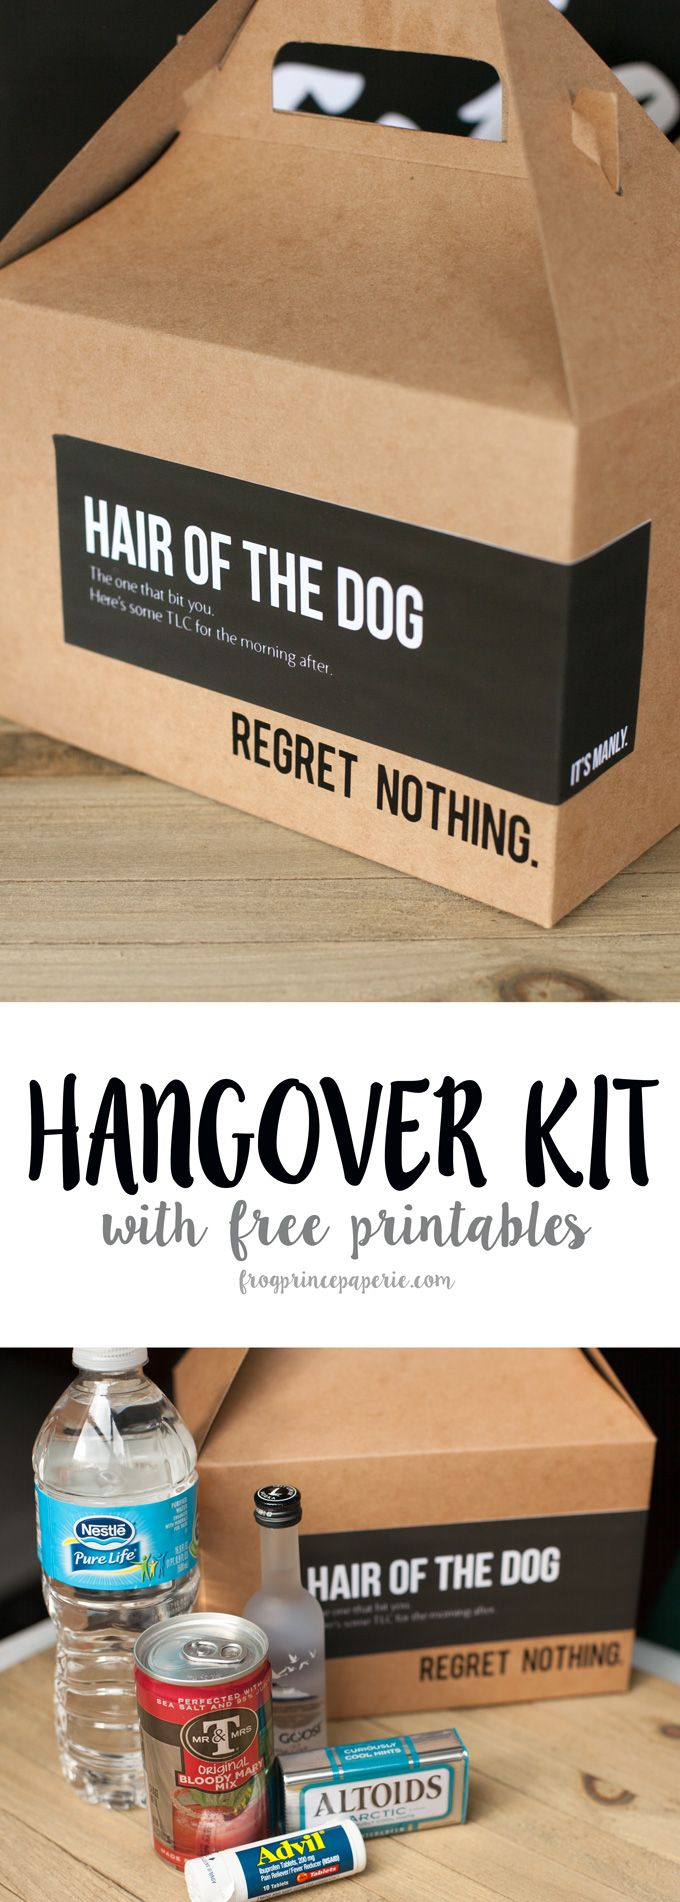 For the really great parties...a DIY Hangover Kit with printables to make your own!